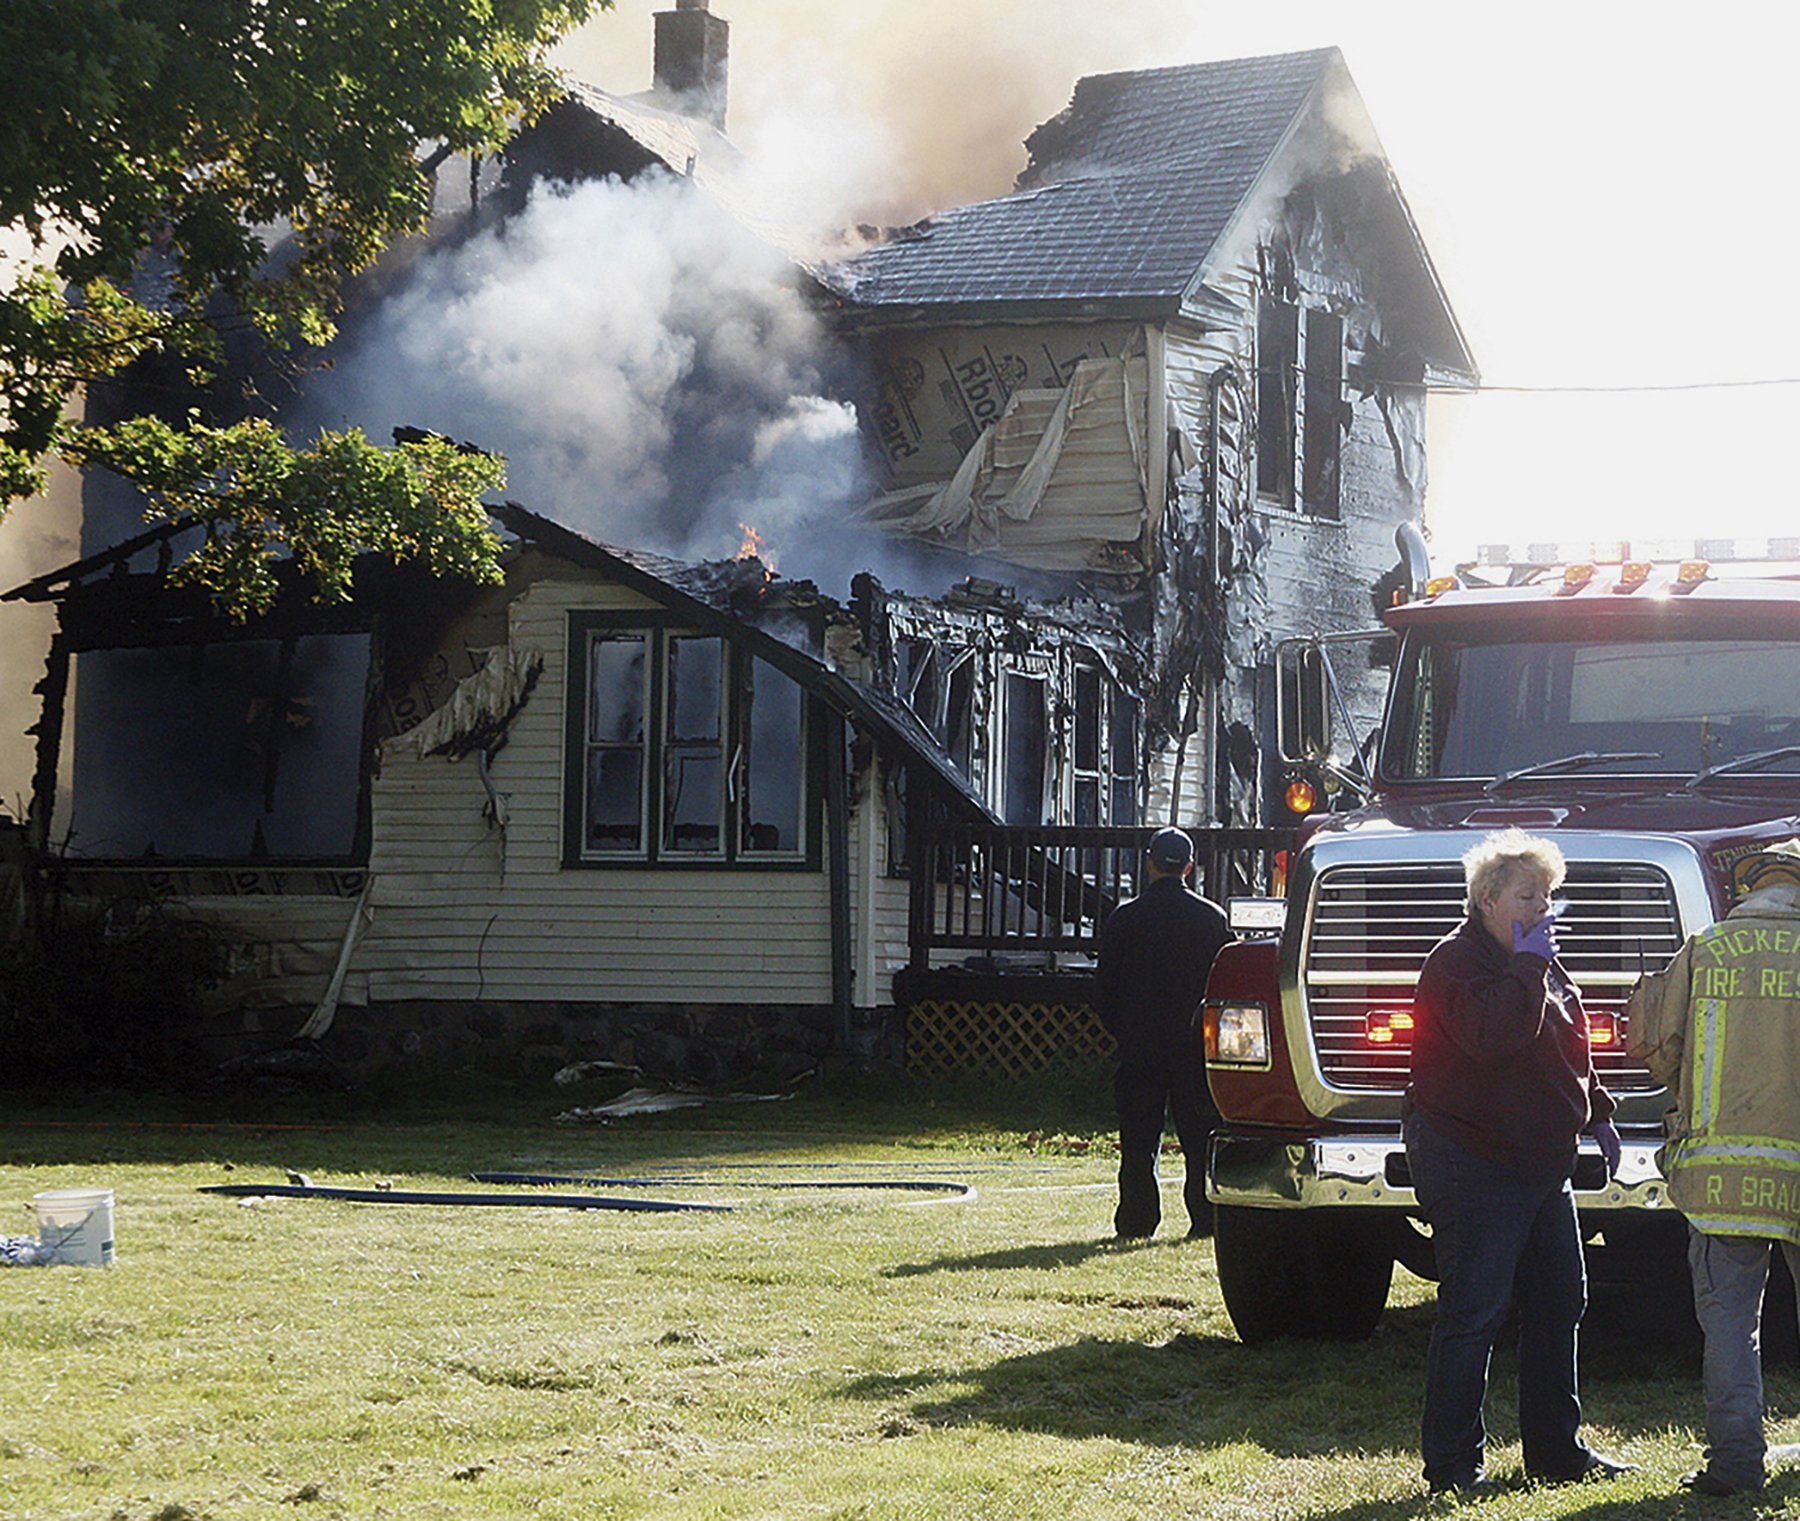 6 dead, including 4 children, in Wisconsin house fire